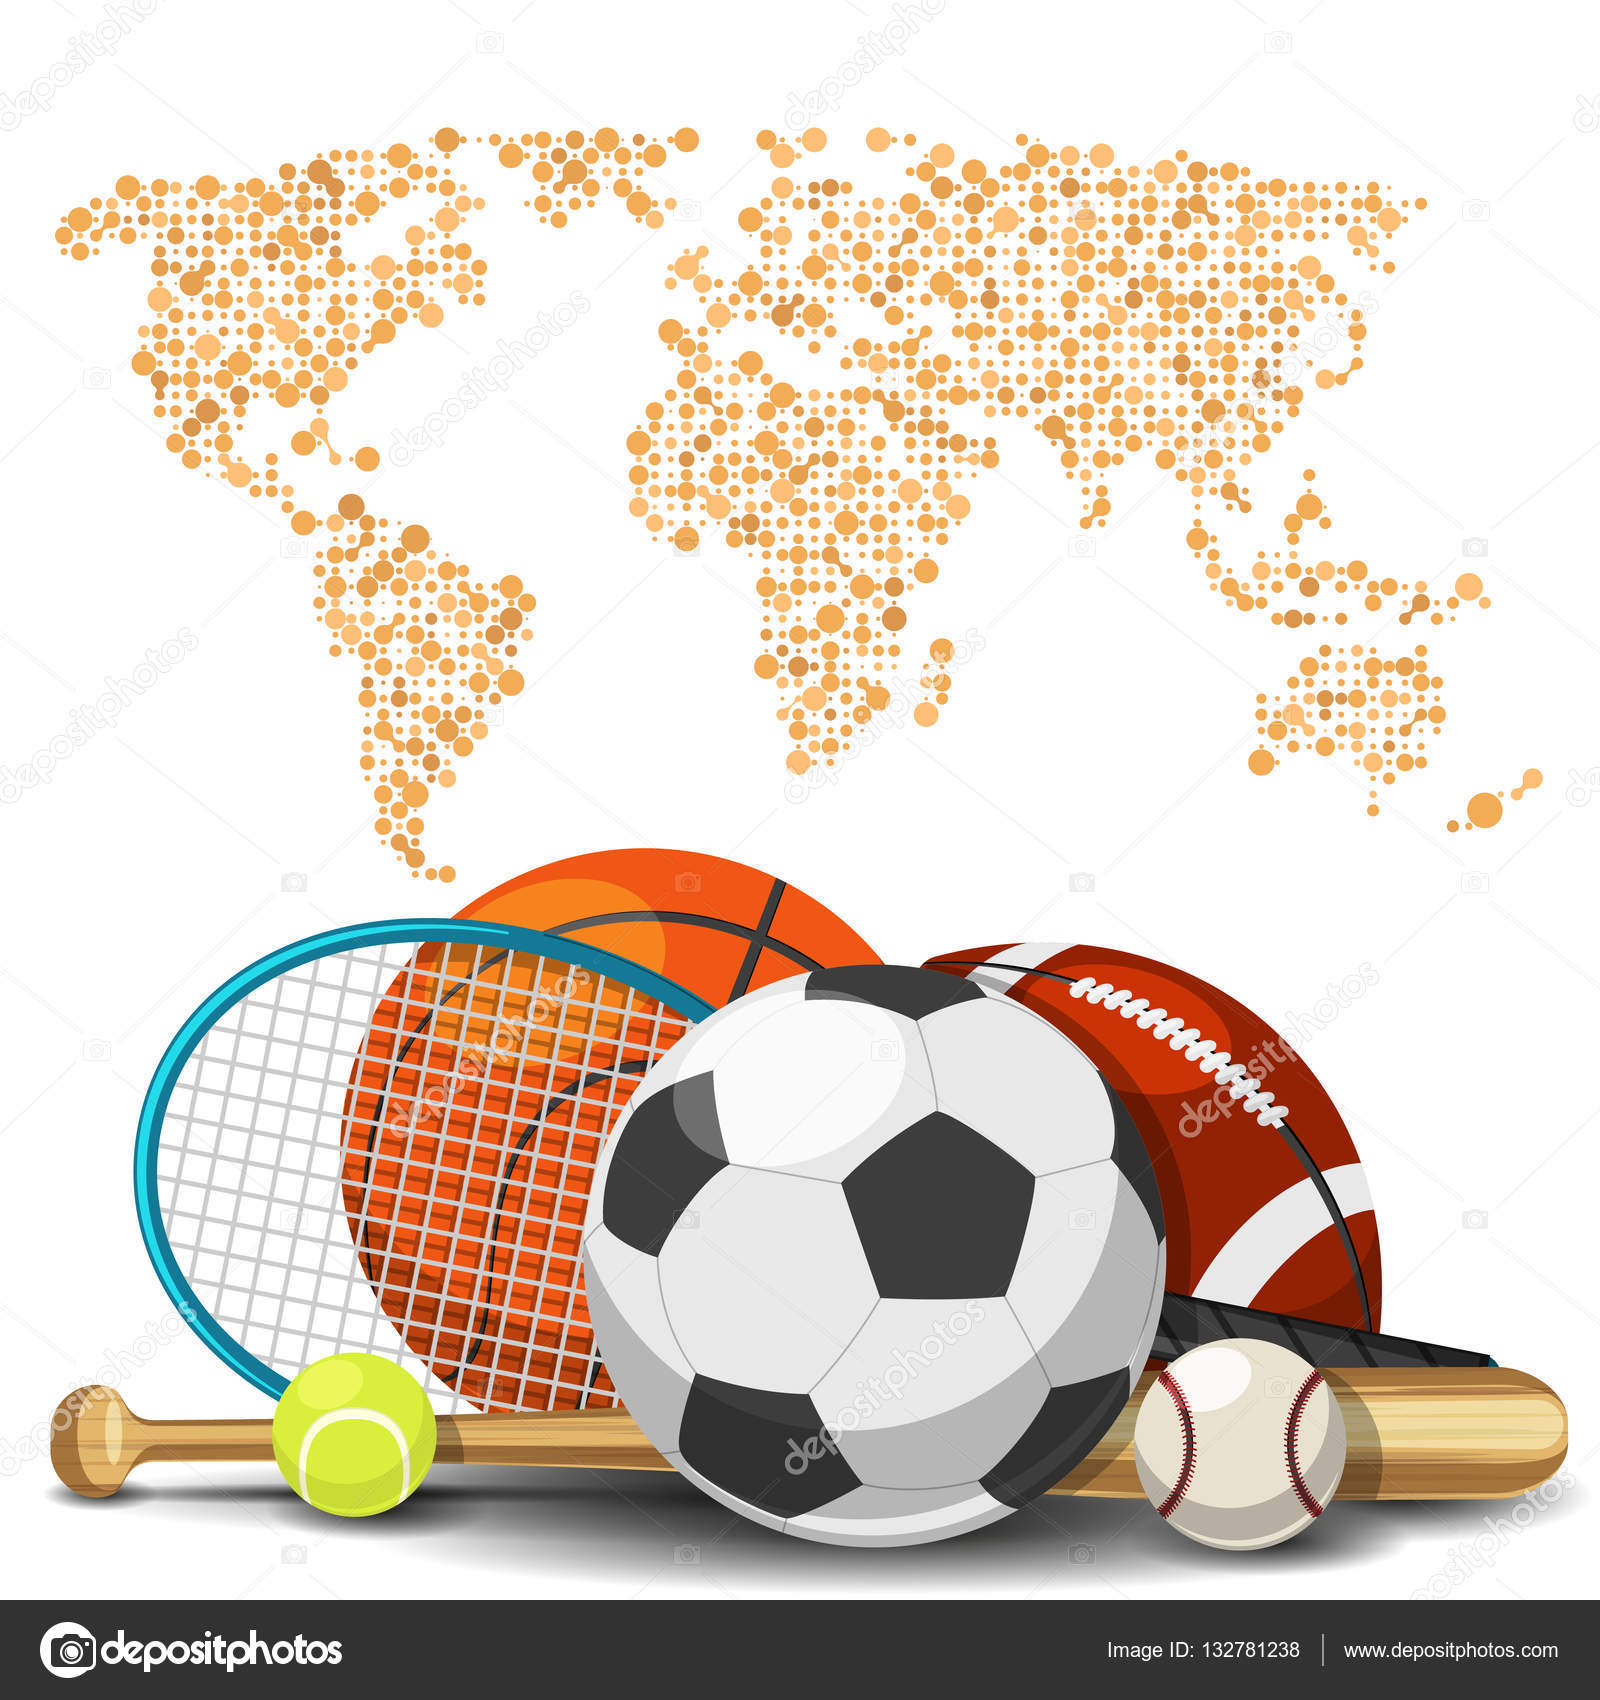 World Sport Deportes Concept. Sports Equipment With Map